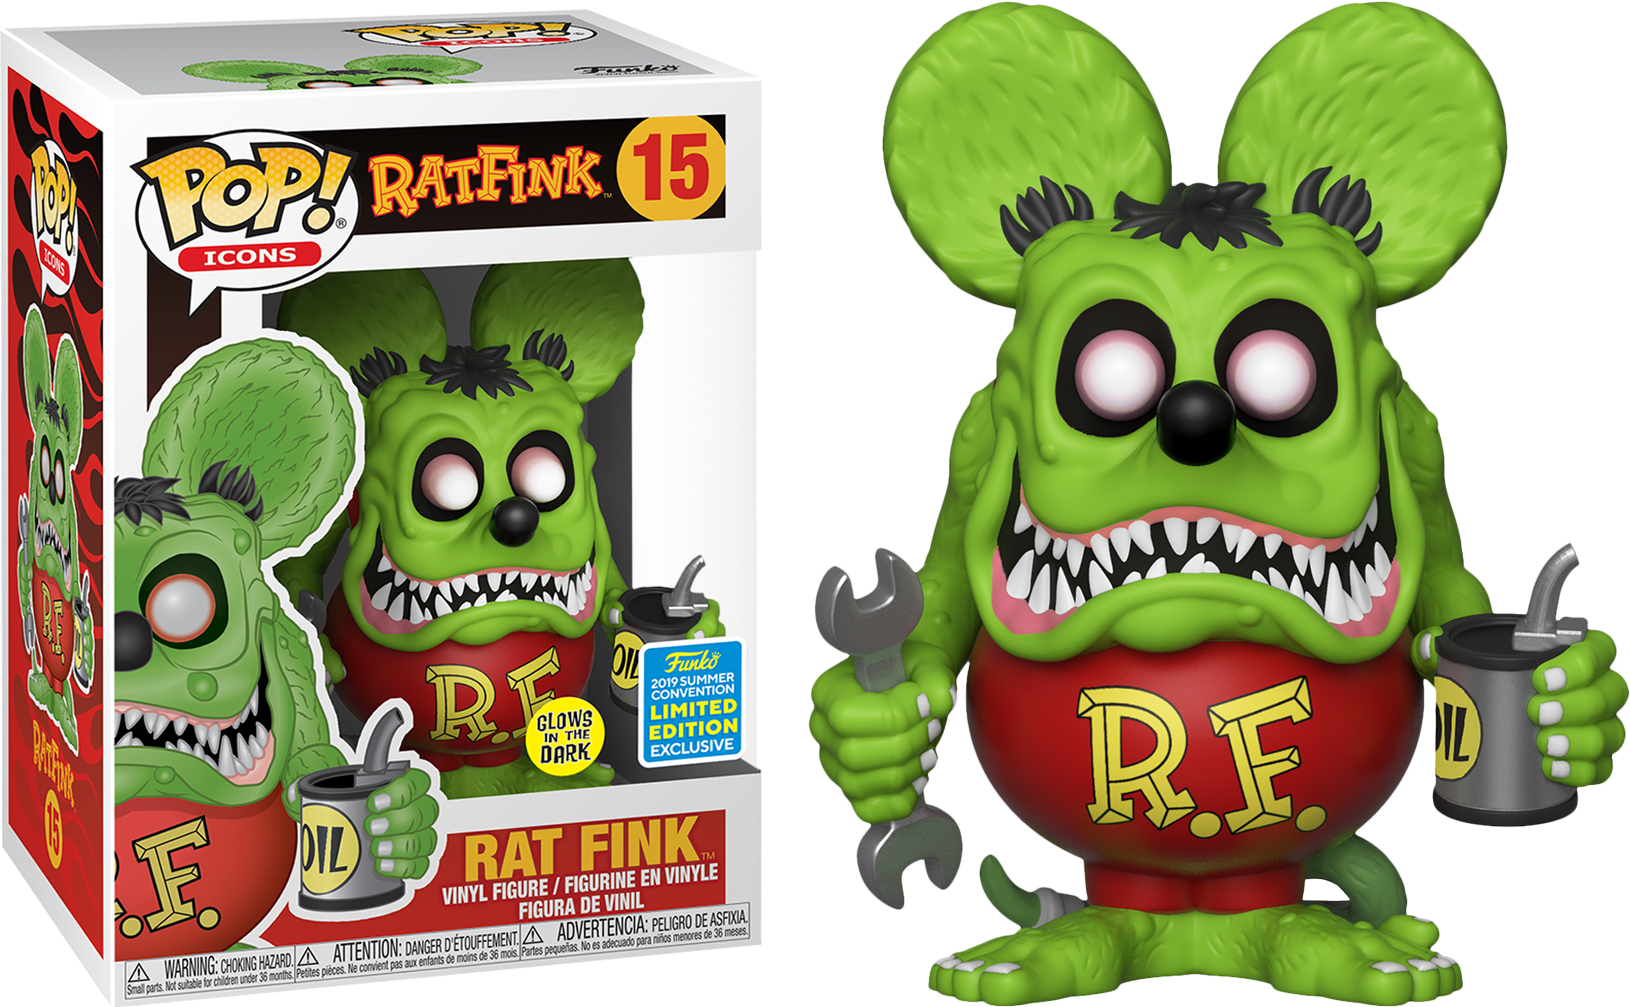 Rat Fink (Funko Pop)